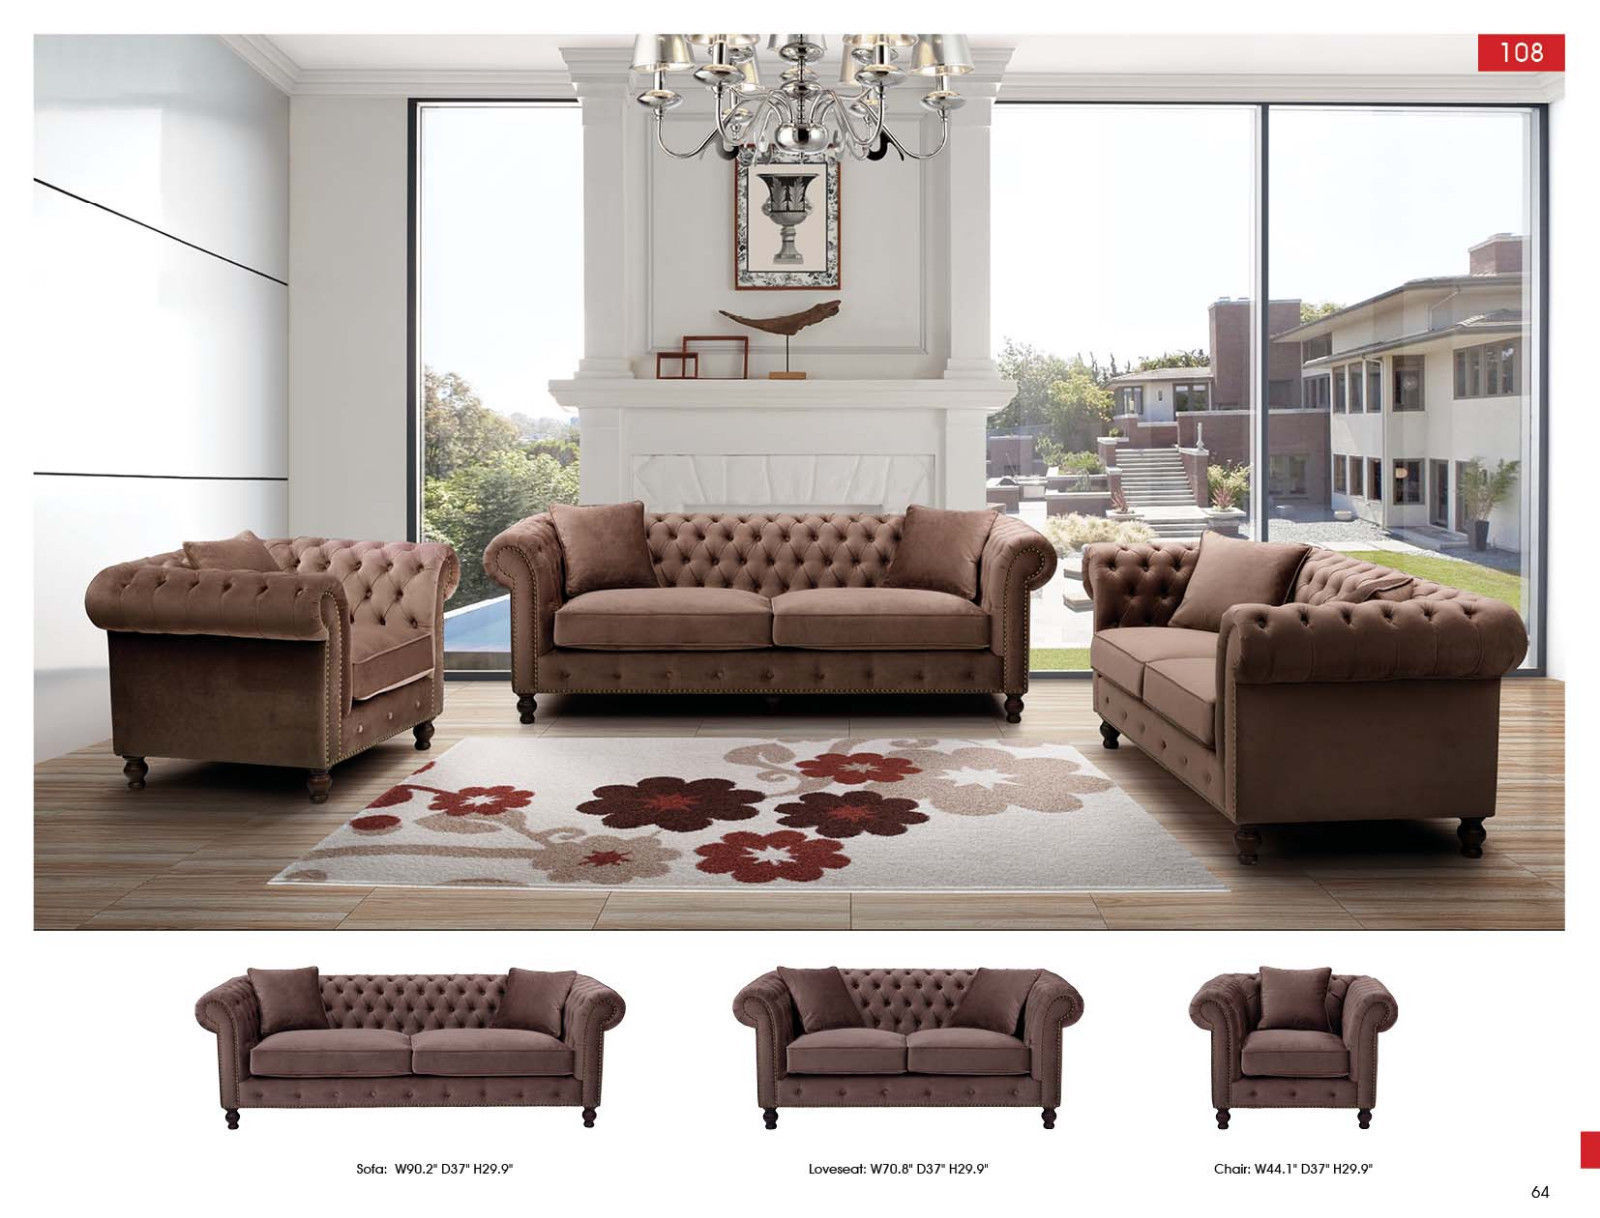 ESF 108 Living Room Sofa Upholstery Tufted Brown Traditional Style